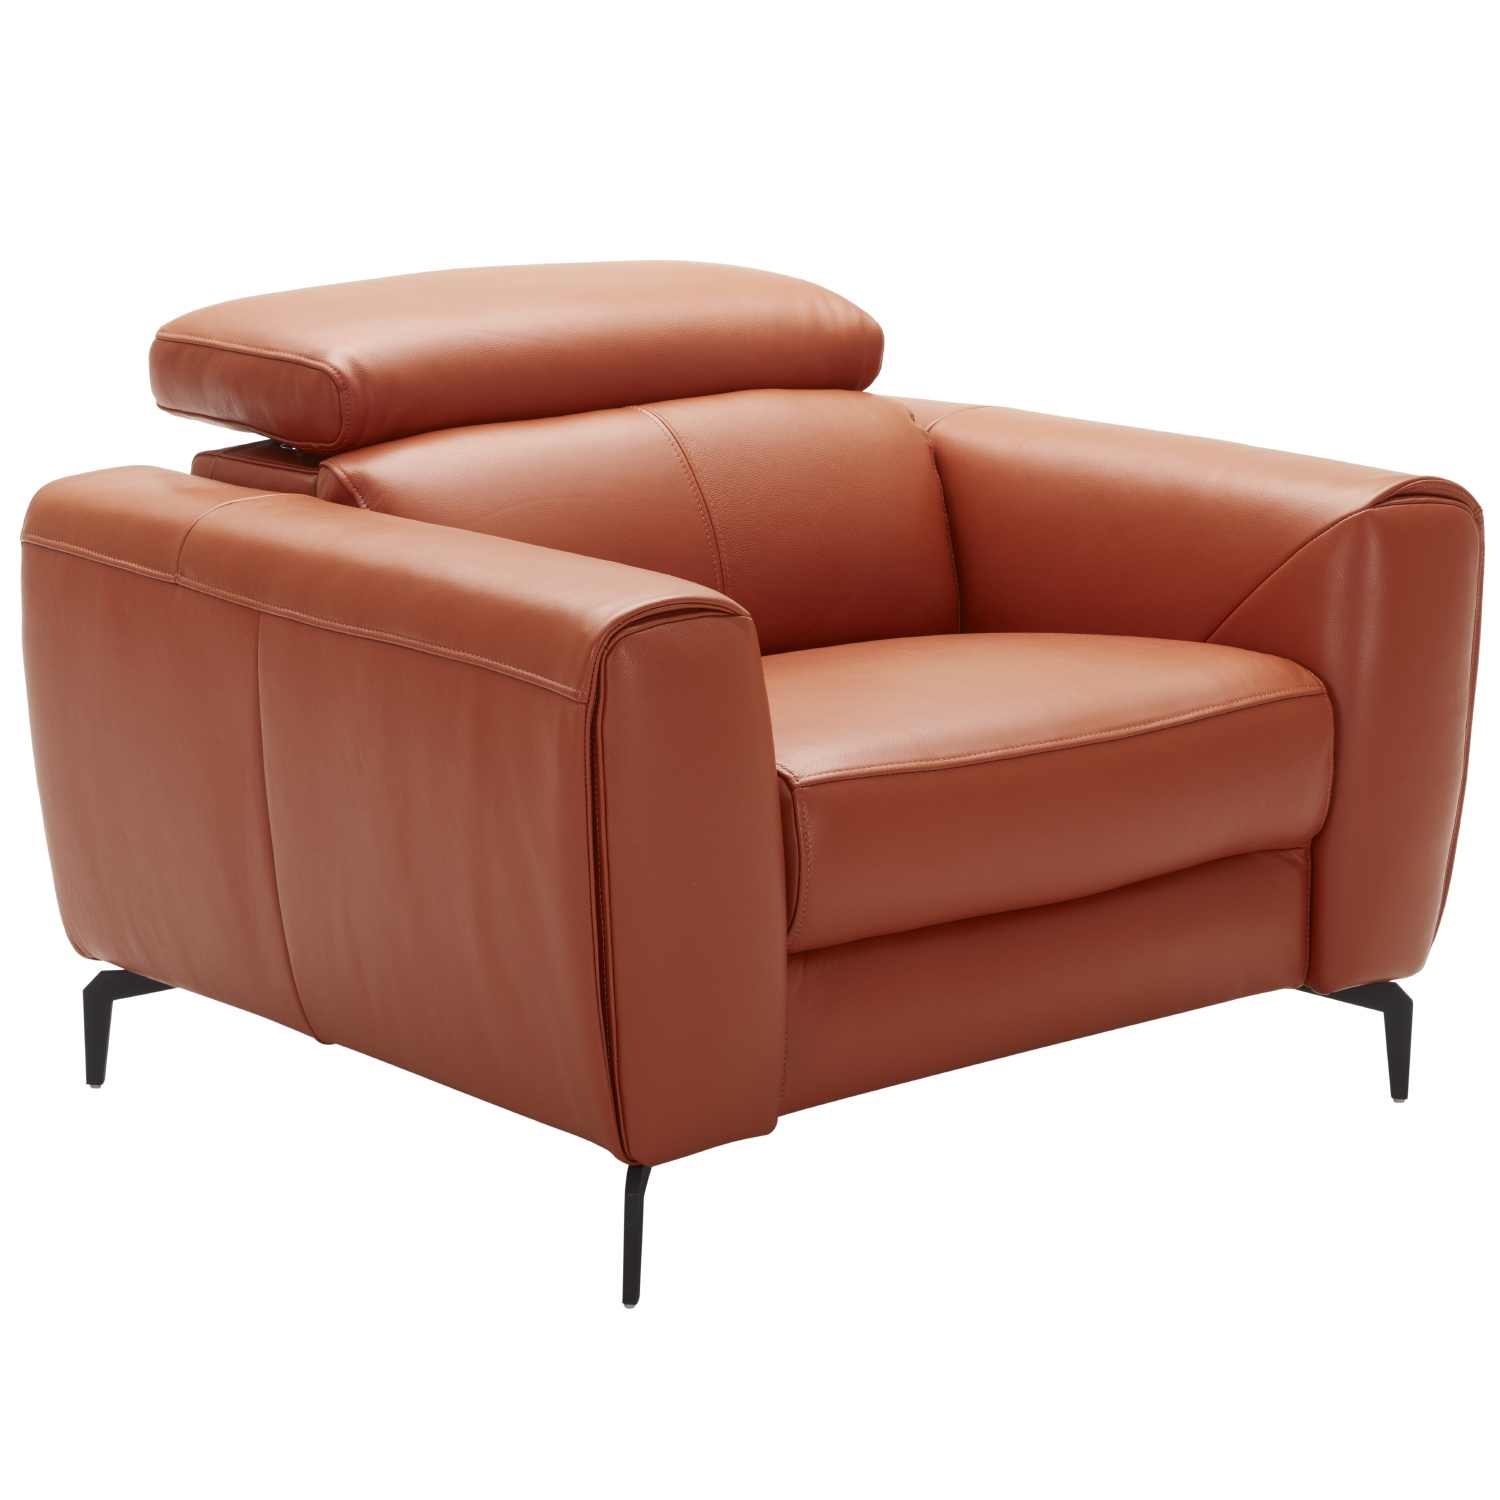 Prime Cooper Accent Chair In Pumpkin Italian Leather By J And M Furniture Andrewgaddart Wooden Chair Designs For Living Room Andrewgaddartcom